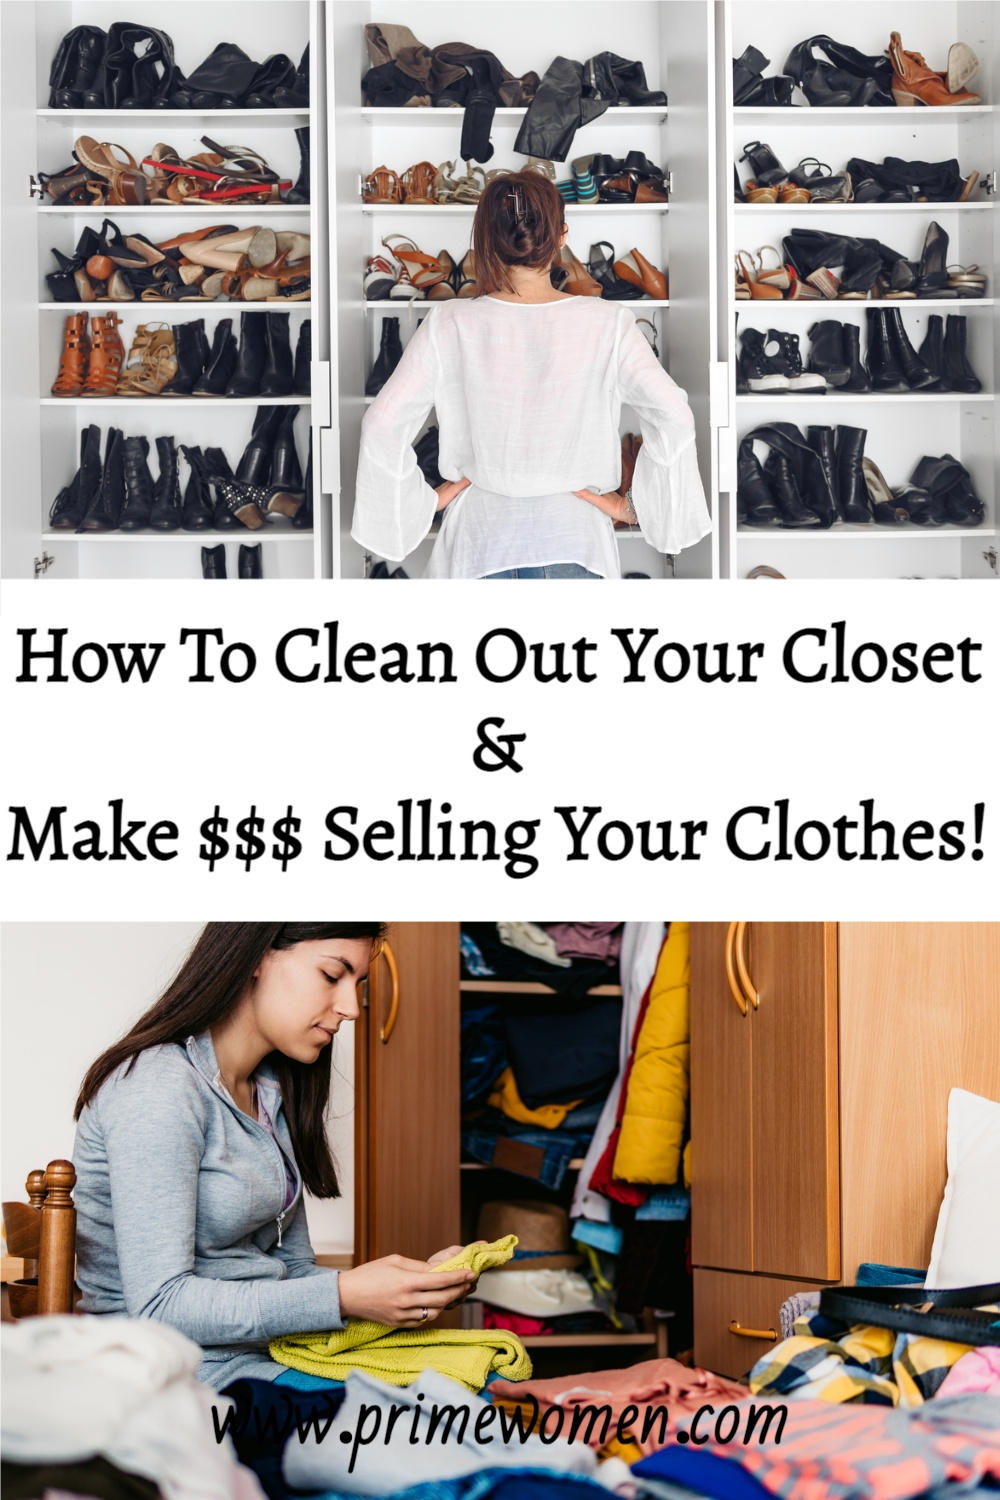 How To Clean Out Your Closet (And Make $$$ Selling Your Clothes!